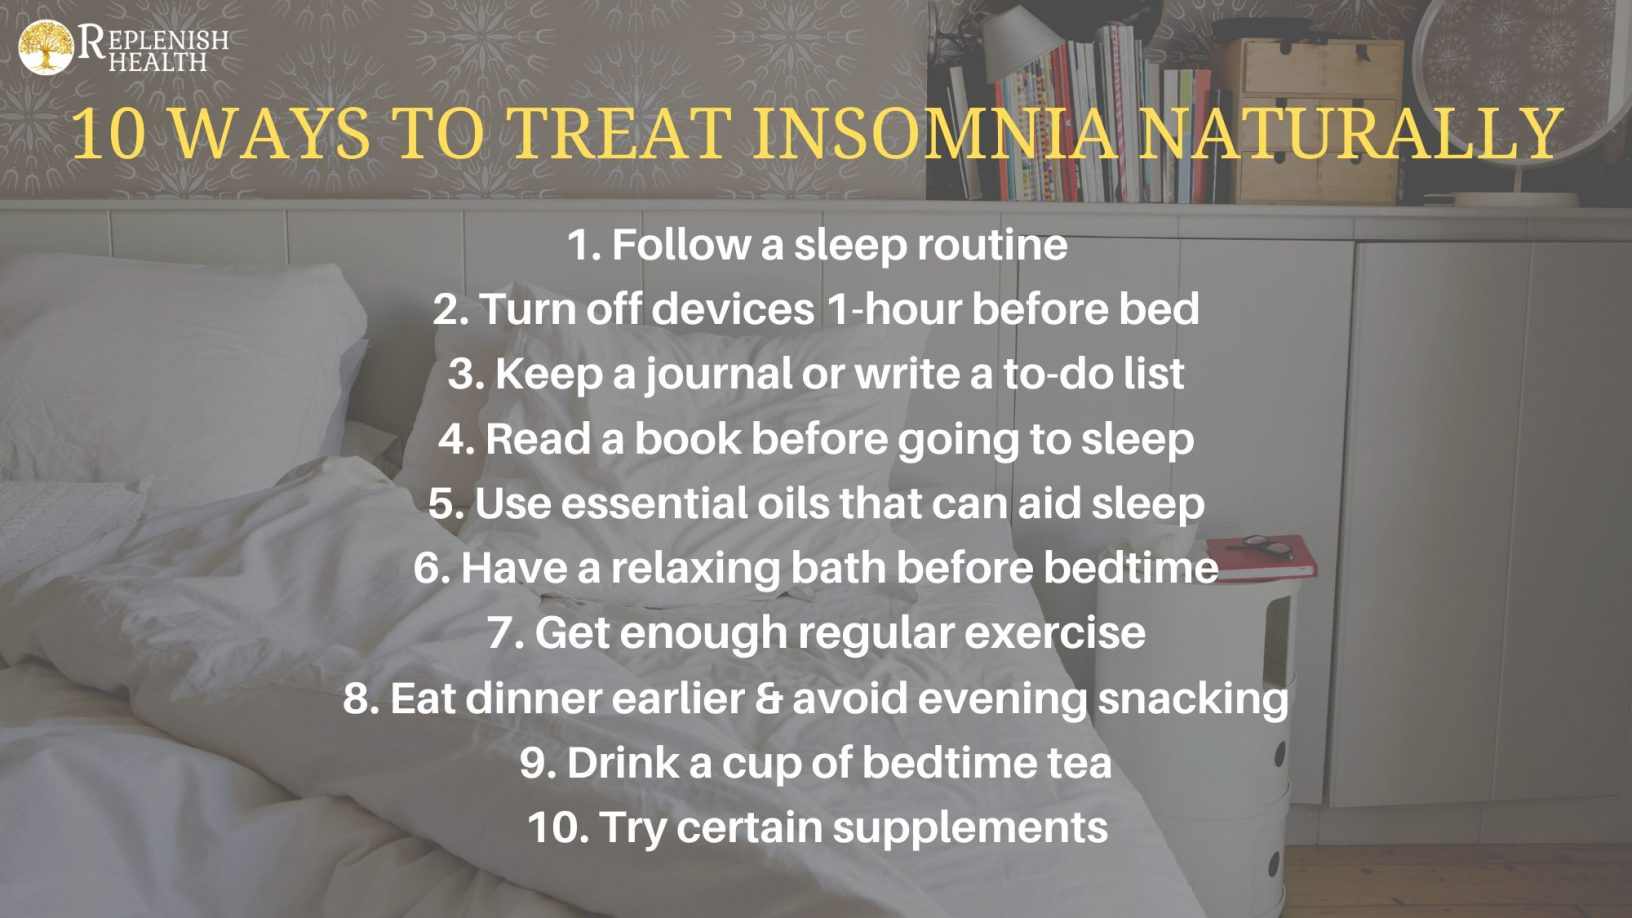 An image of a printable of 10 ways to treat insomnia naturally